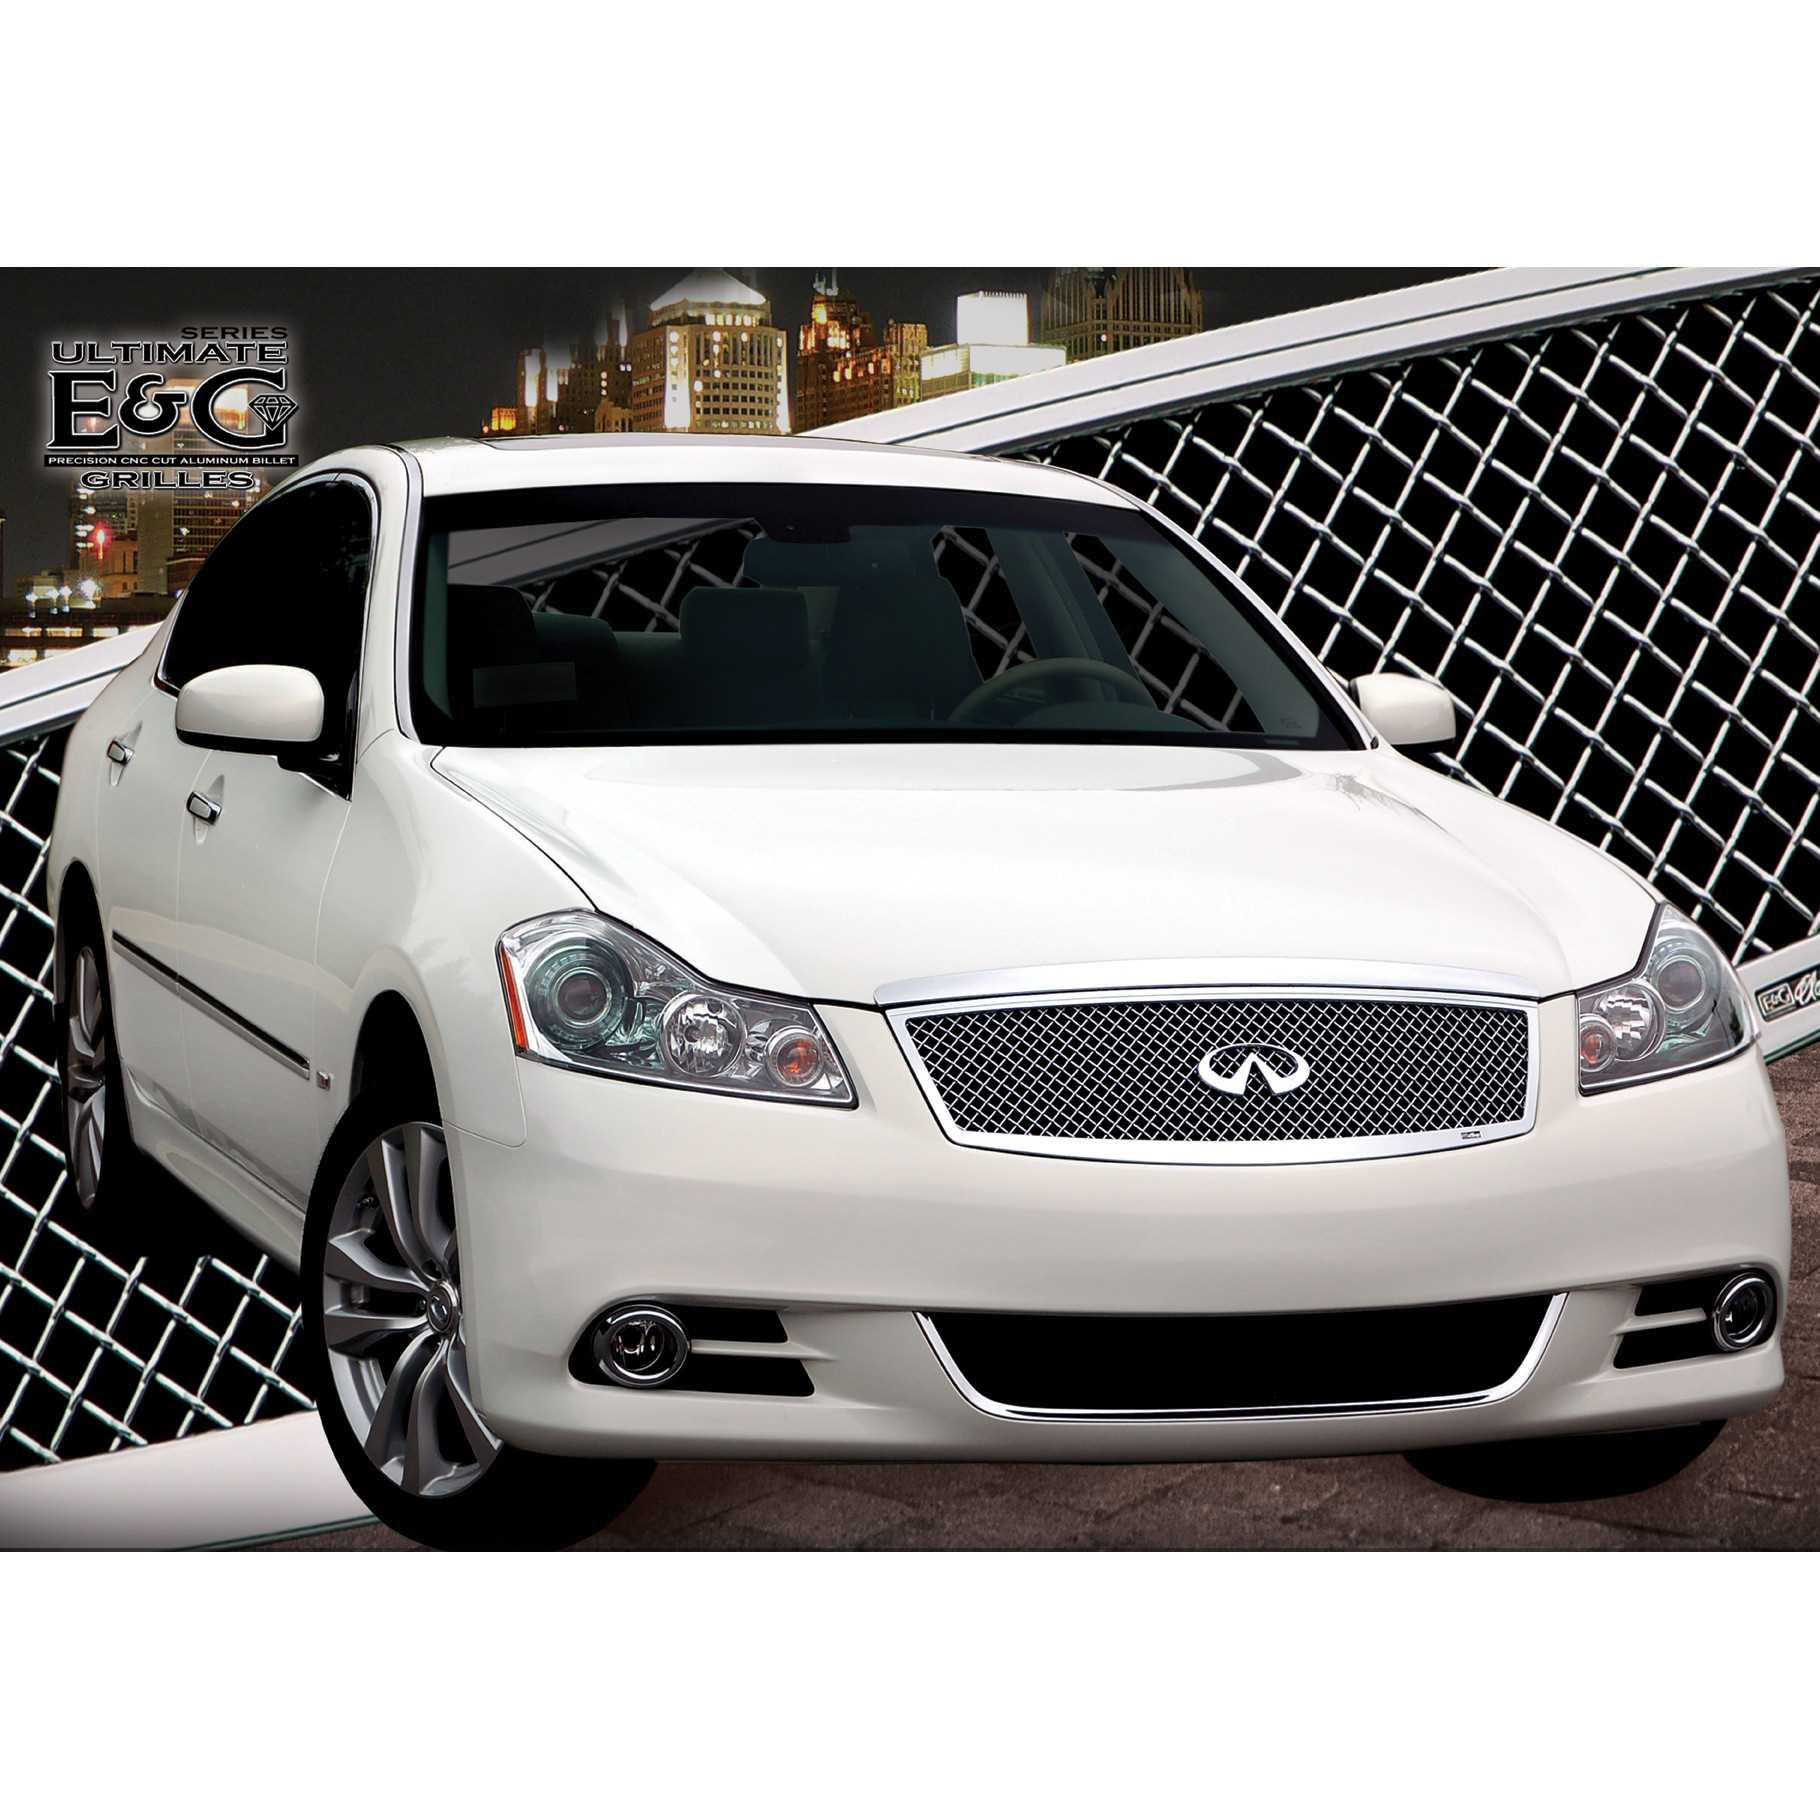 E G Clics 2008 2010 Infiniti M35 M45 Grille Ultimate Heavy Mesh Upper Only 1411 0104 08a